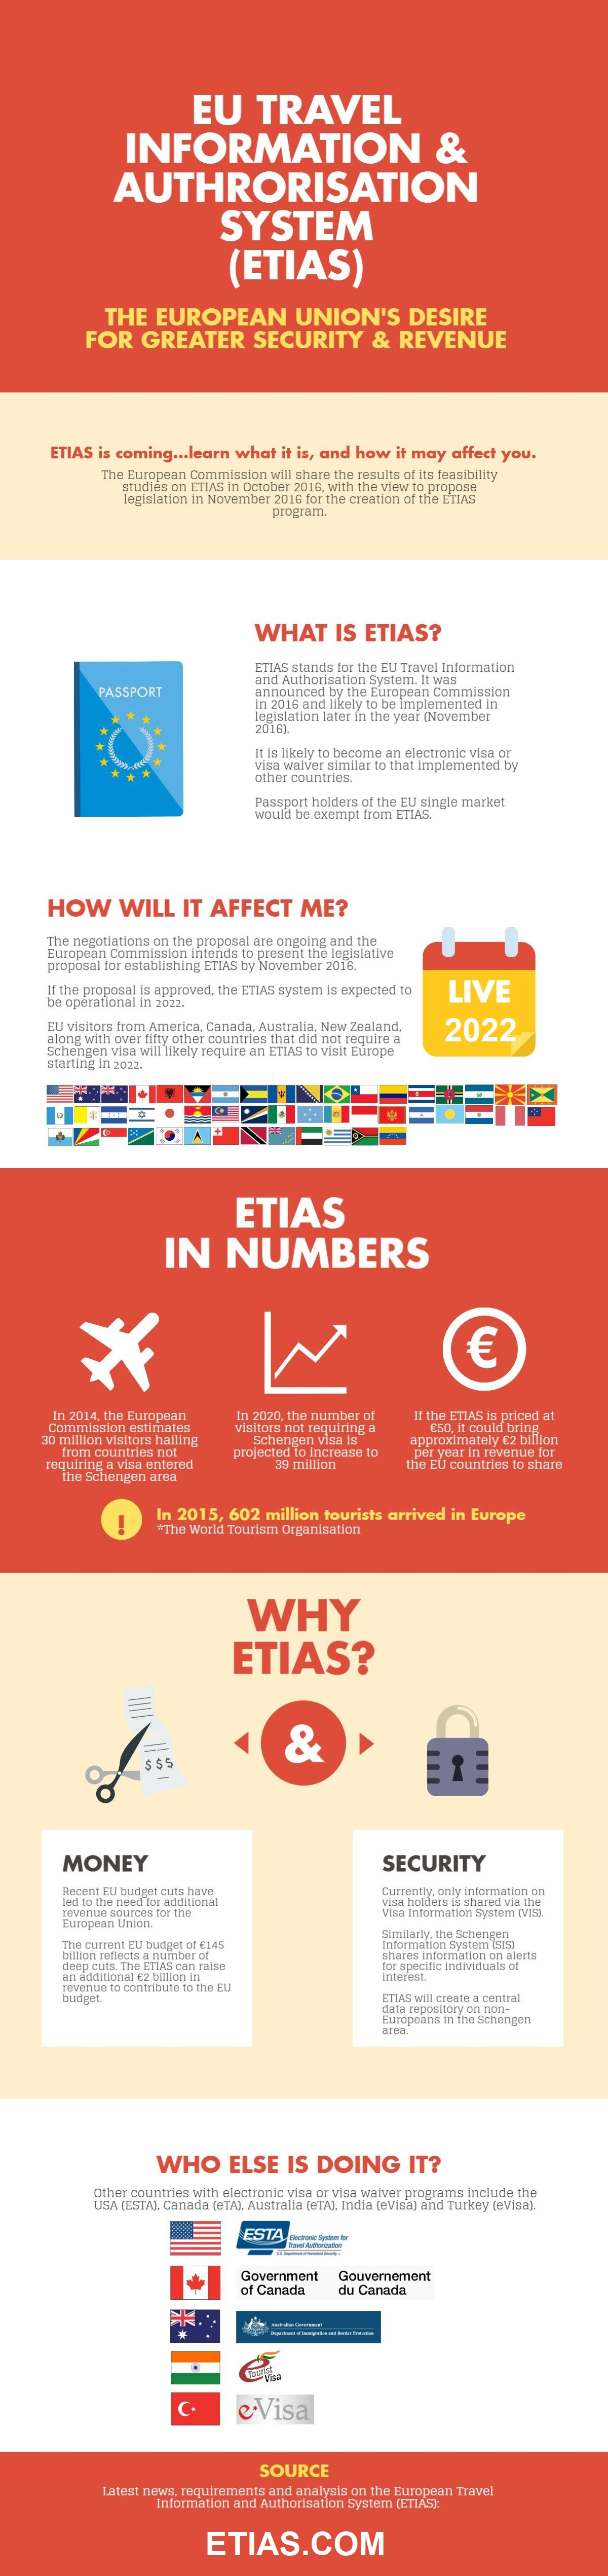 Important information about the new European visa waiver known as ETIAS (European Travel Information and Authorisation System)